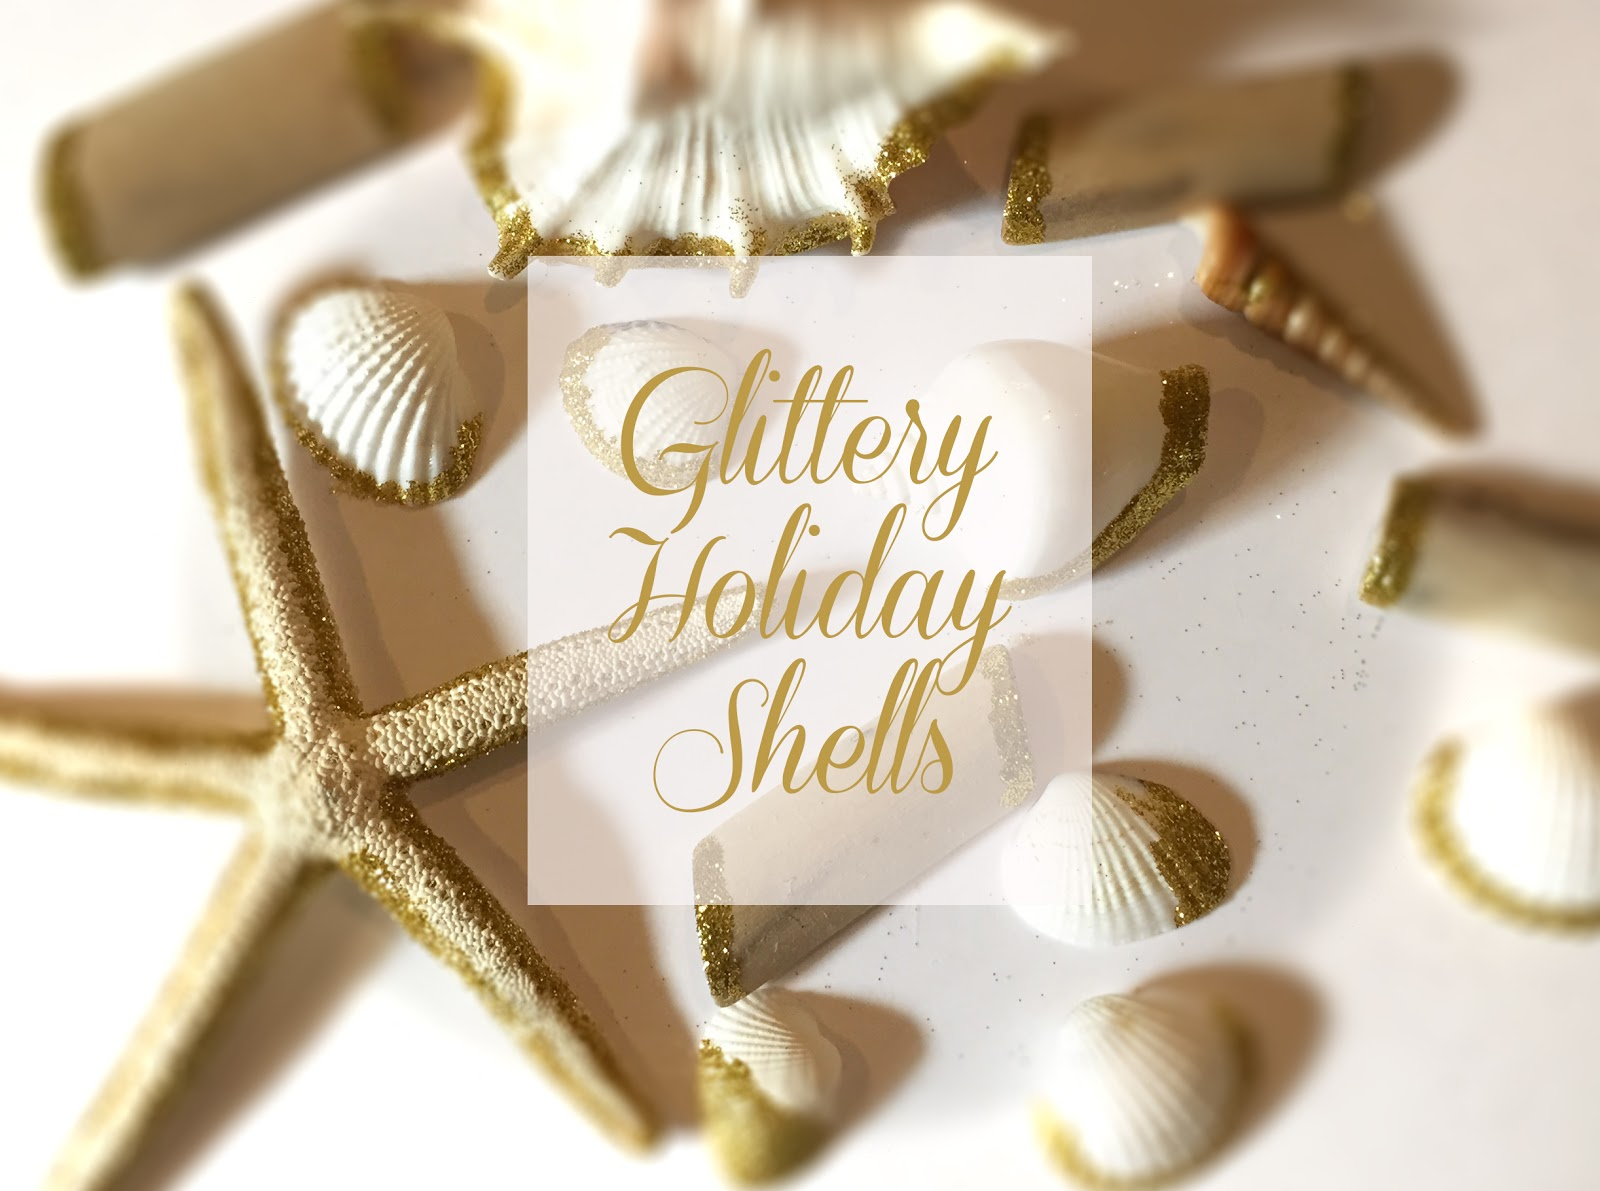 Glittery Holiday Shells